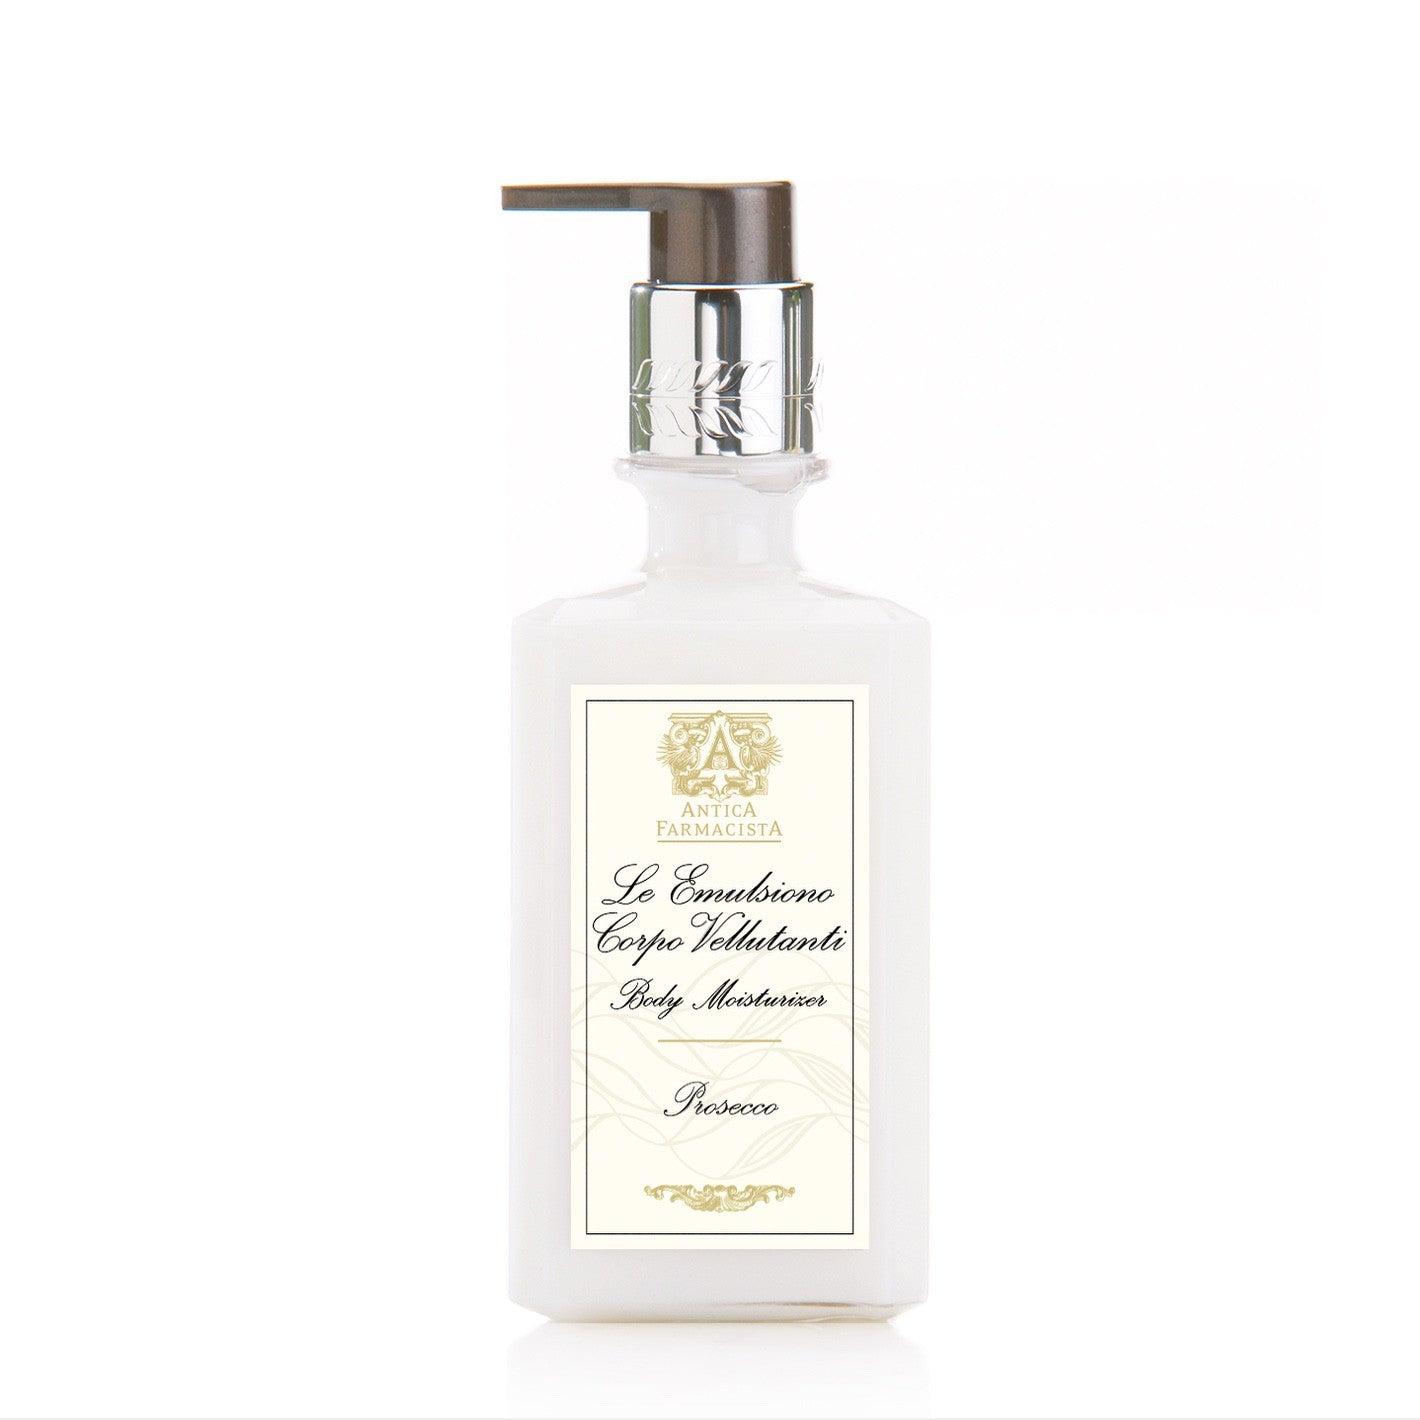 Antica Farmacista Body Moisturizer - Prosecco, AF-Antica Farmacista, Putti Fine Furnishings